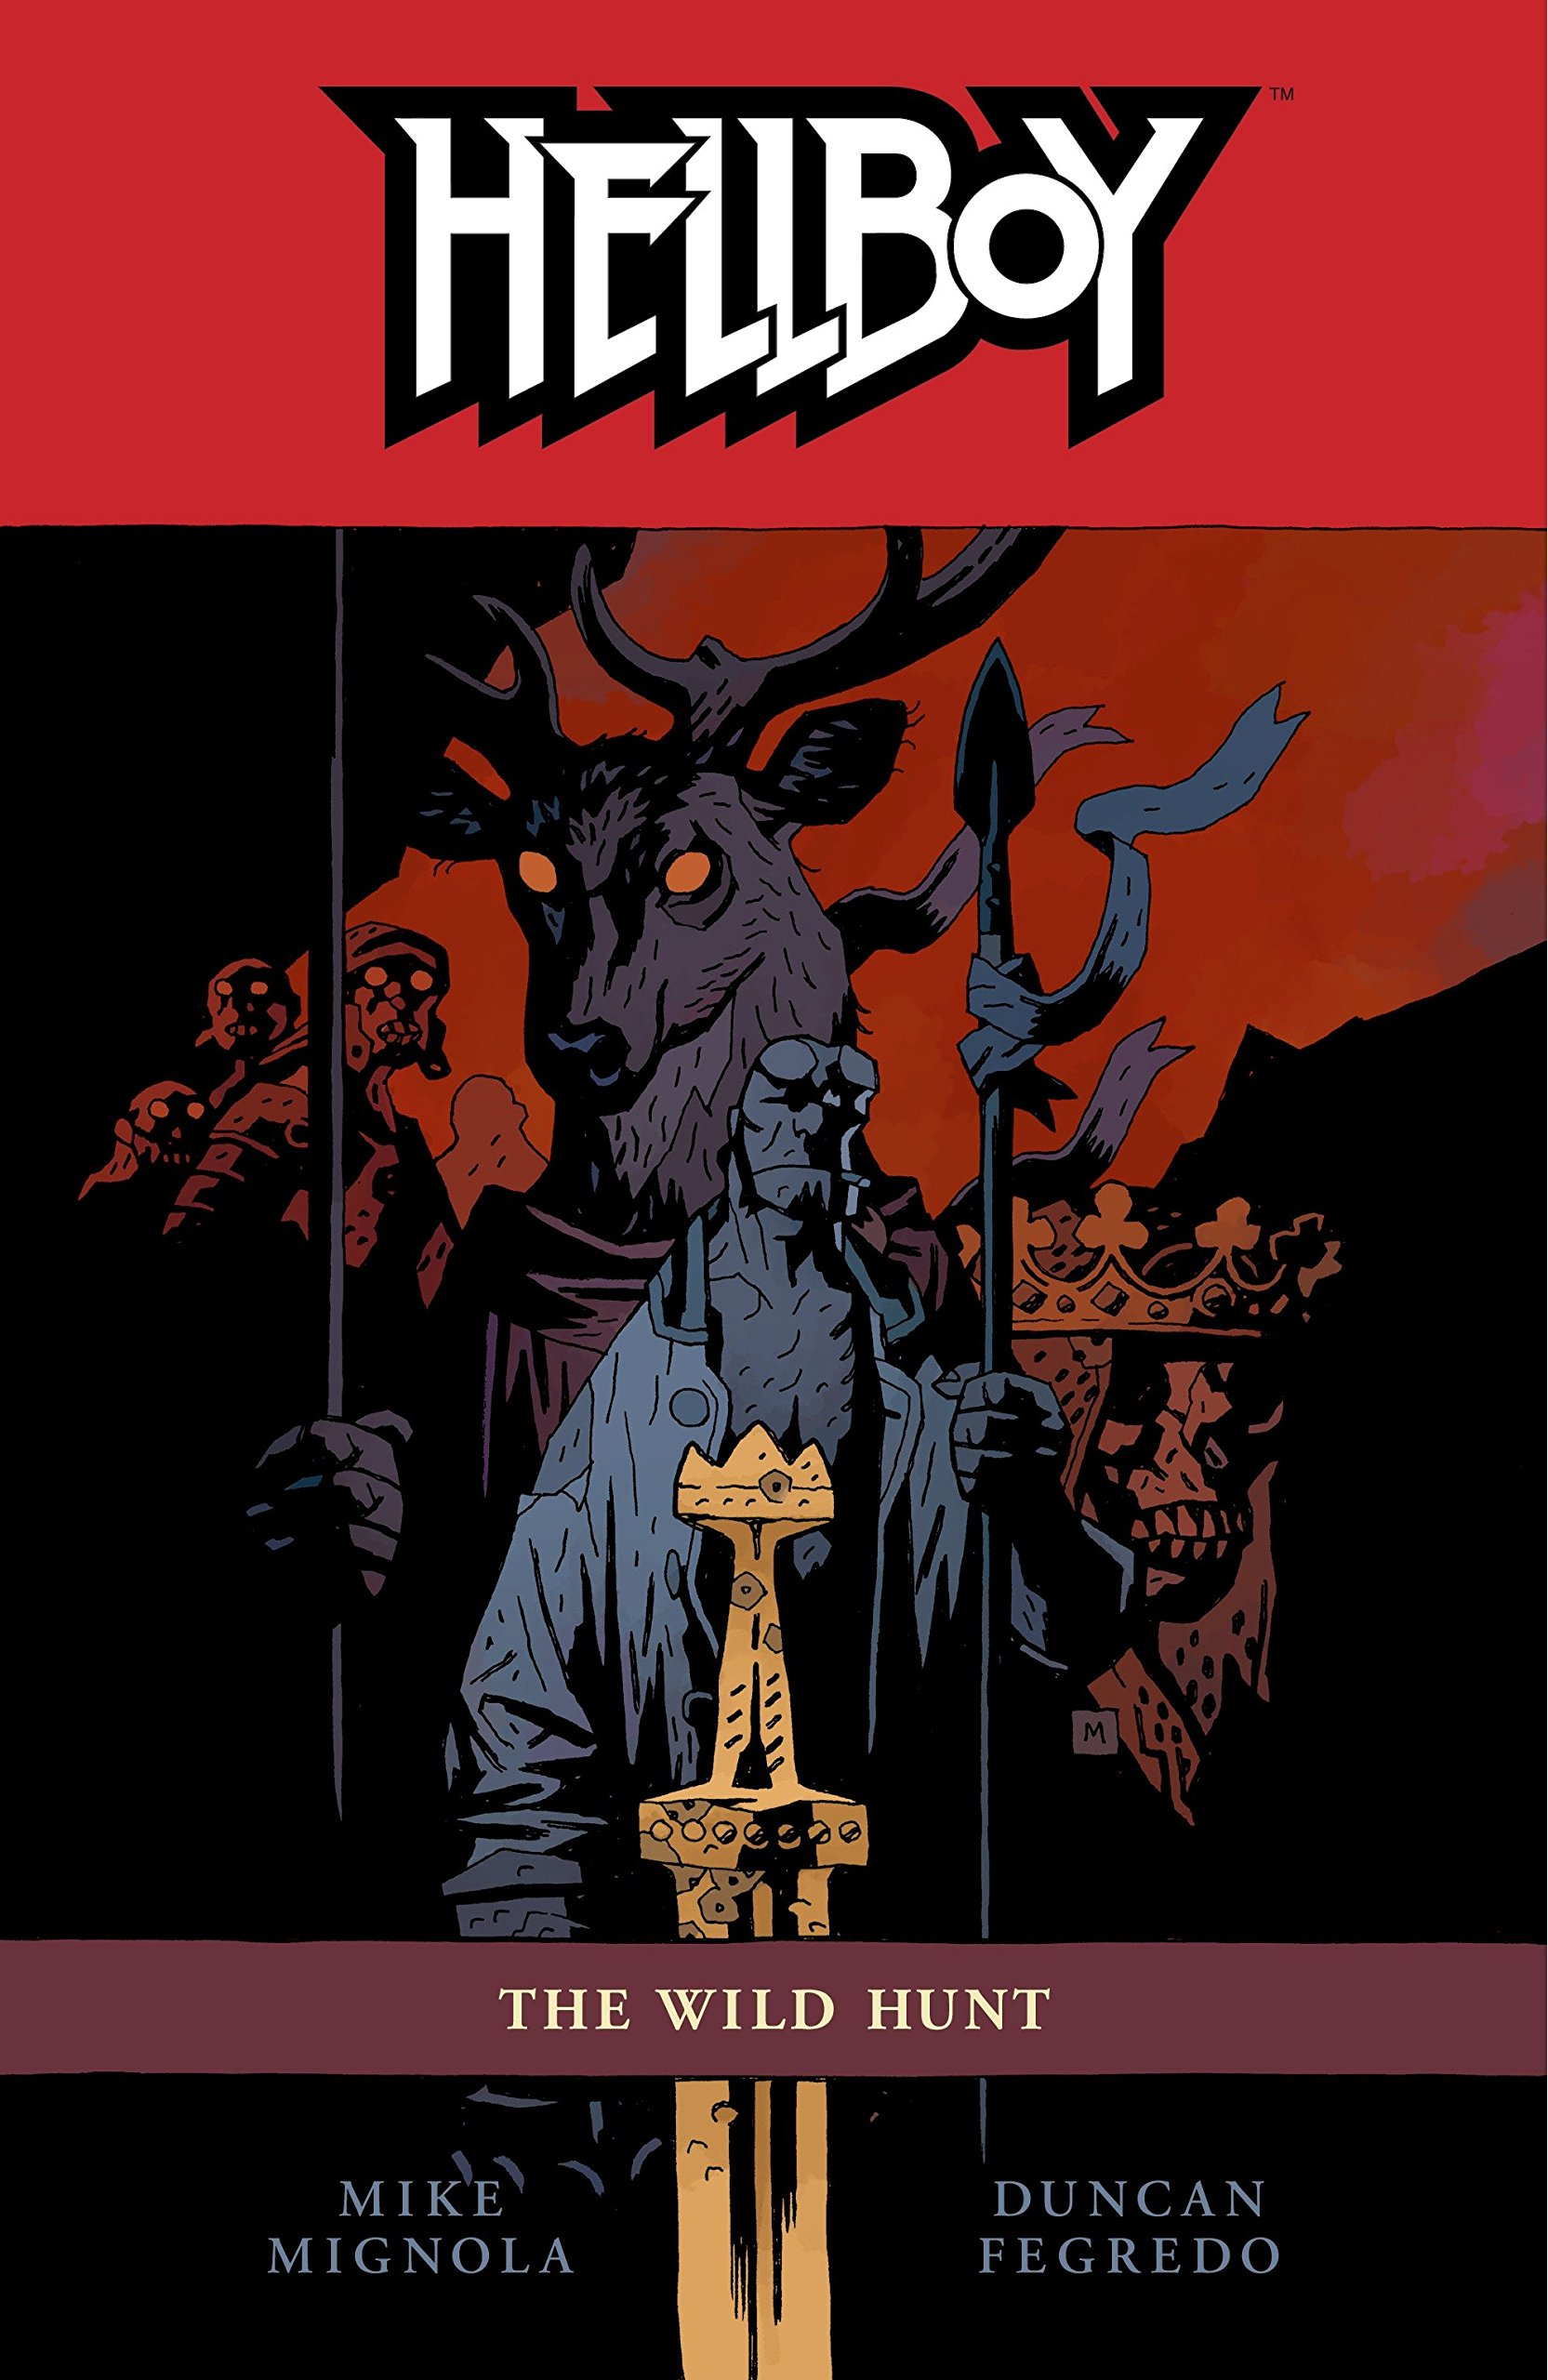 Hellboy vol 9: The Wild Hunt story by Mike Mignola.